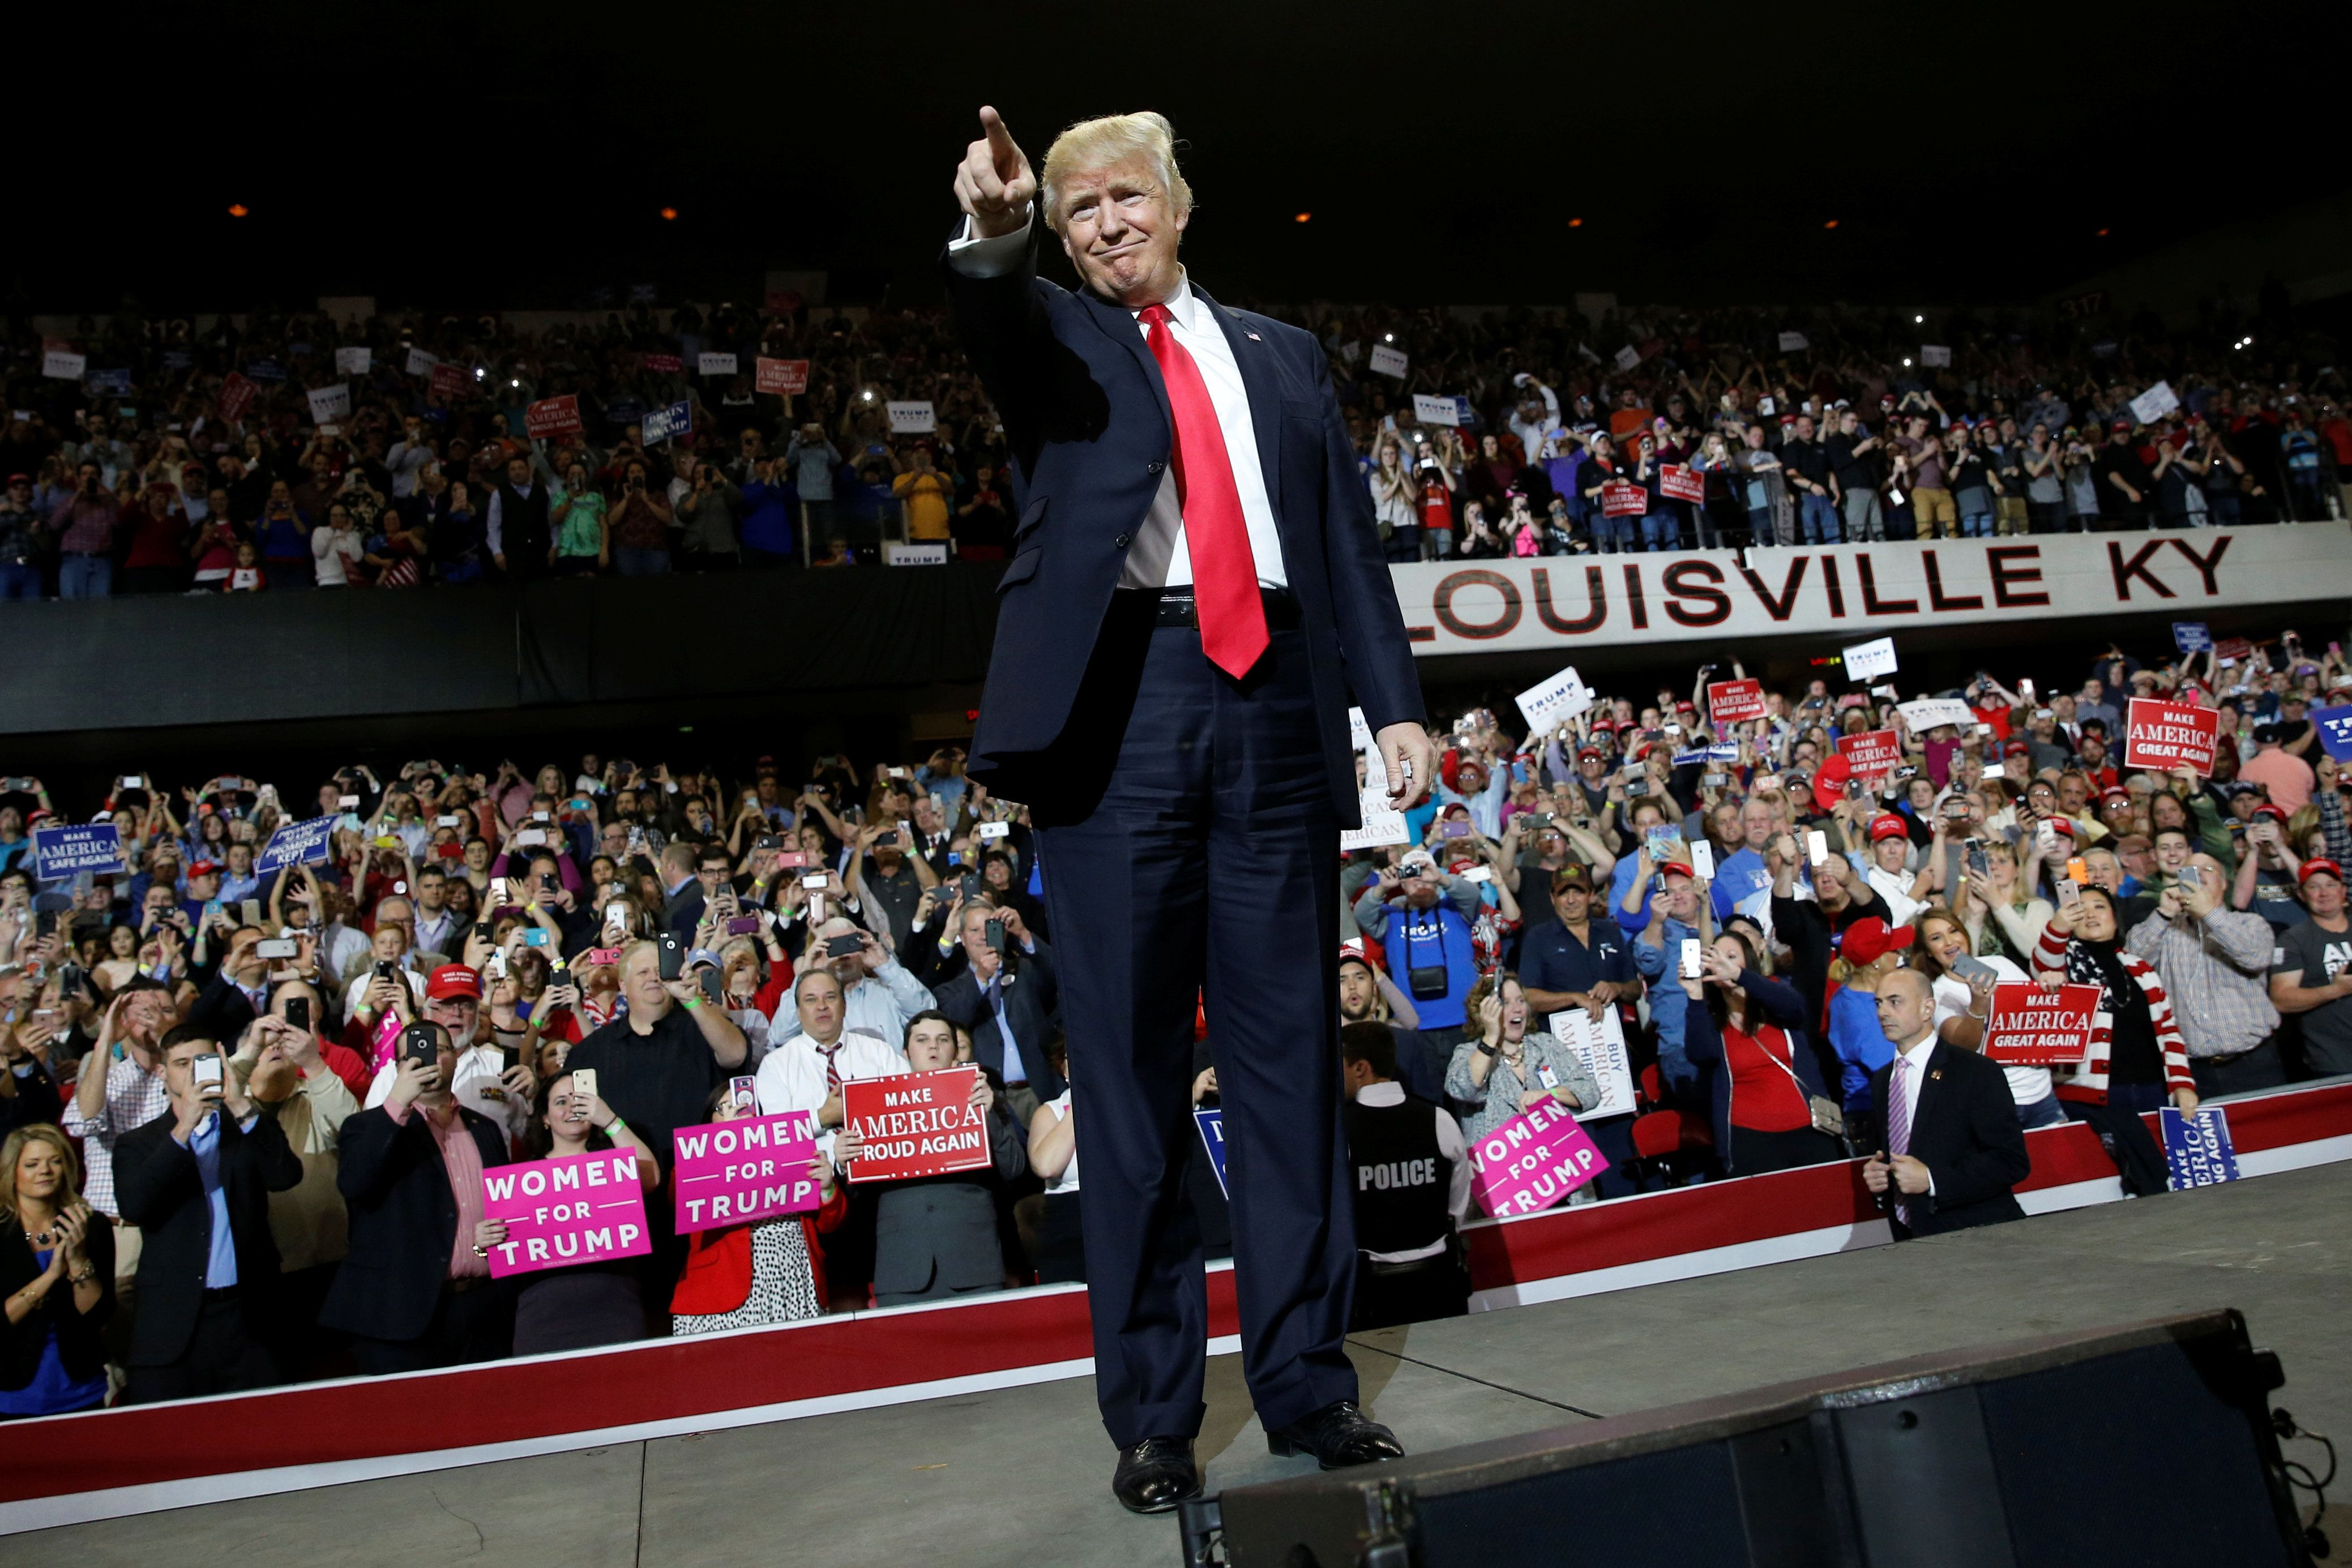 U.S. President Donald Trump takes the stage for a rally at the Kentucky Exposition Center in Louisville, Kentucky, U.S. March 20, 2017. REUTERS/Jonathan Ernst